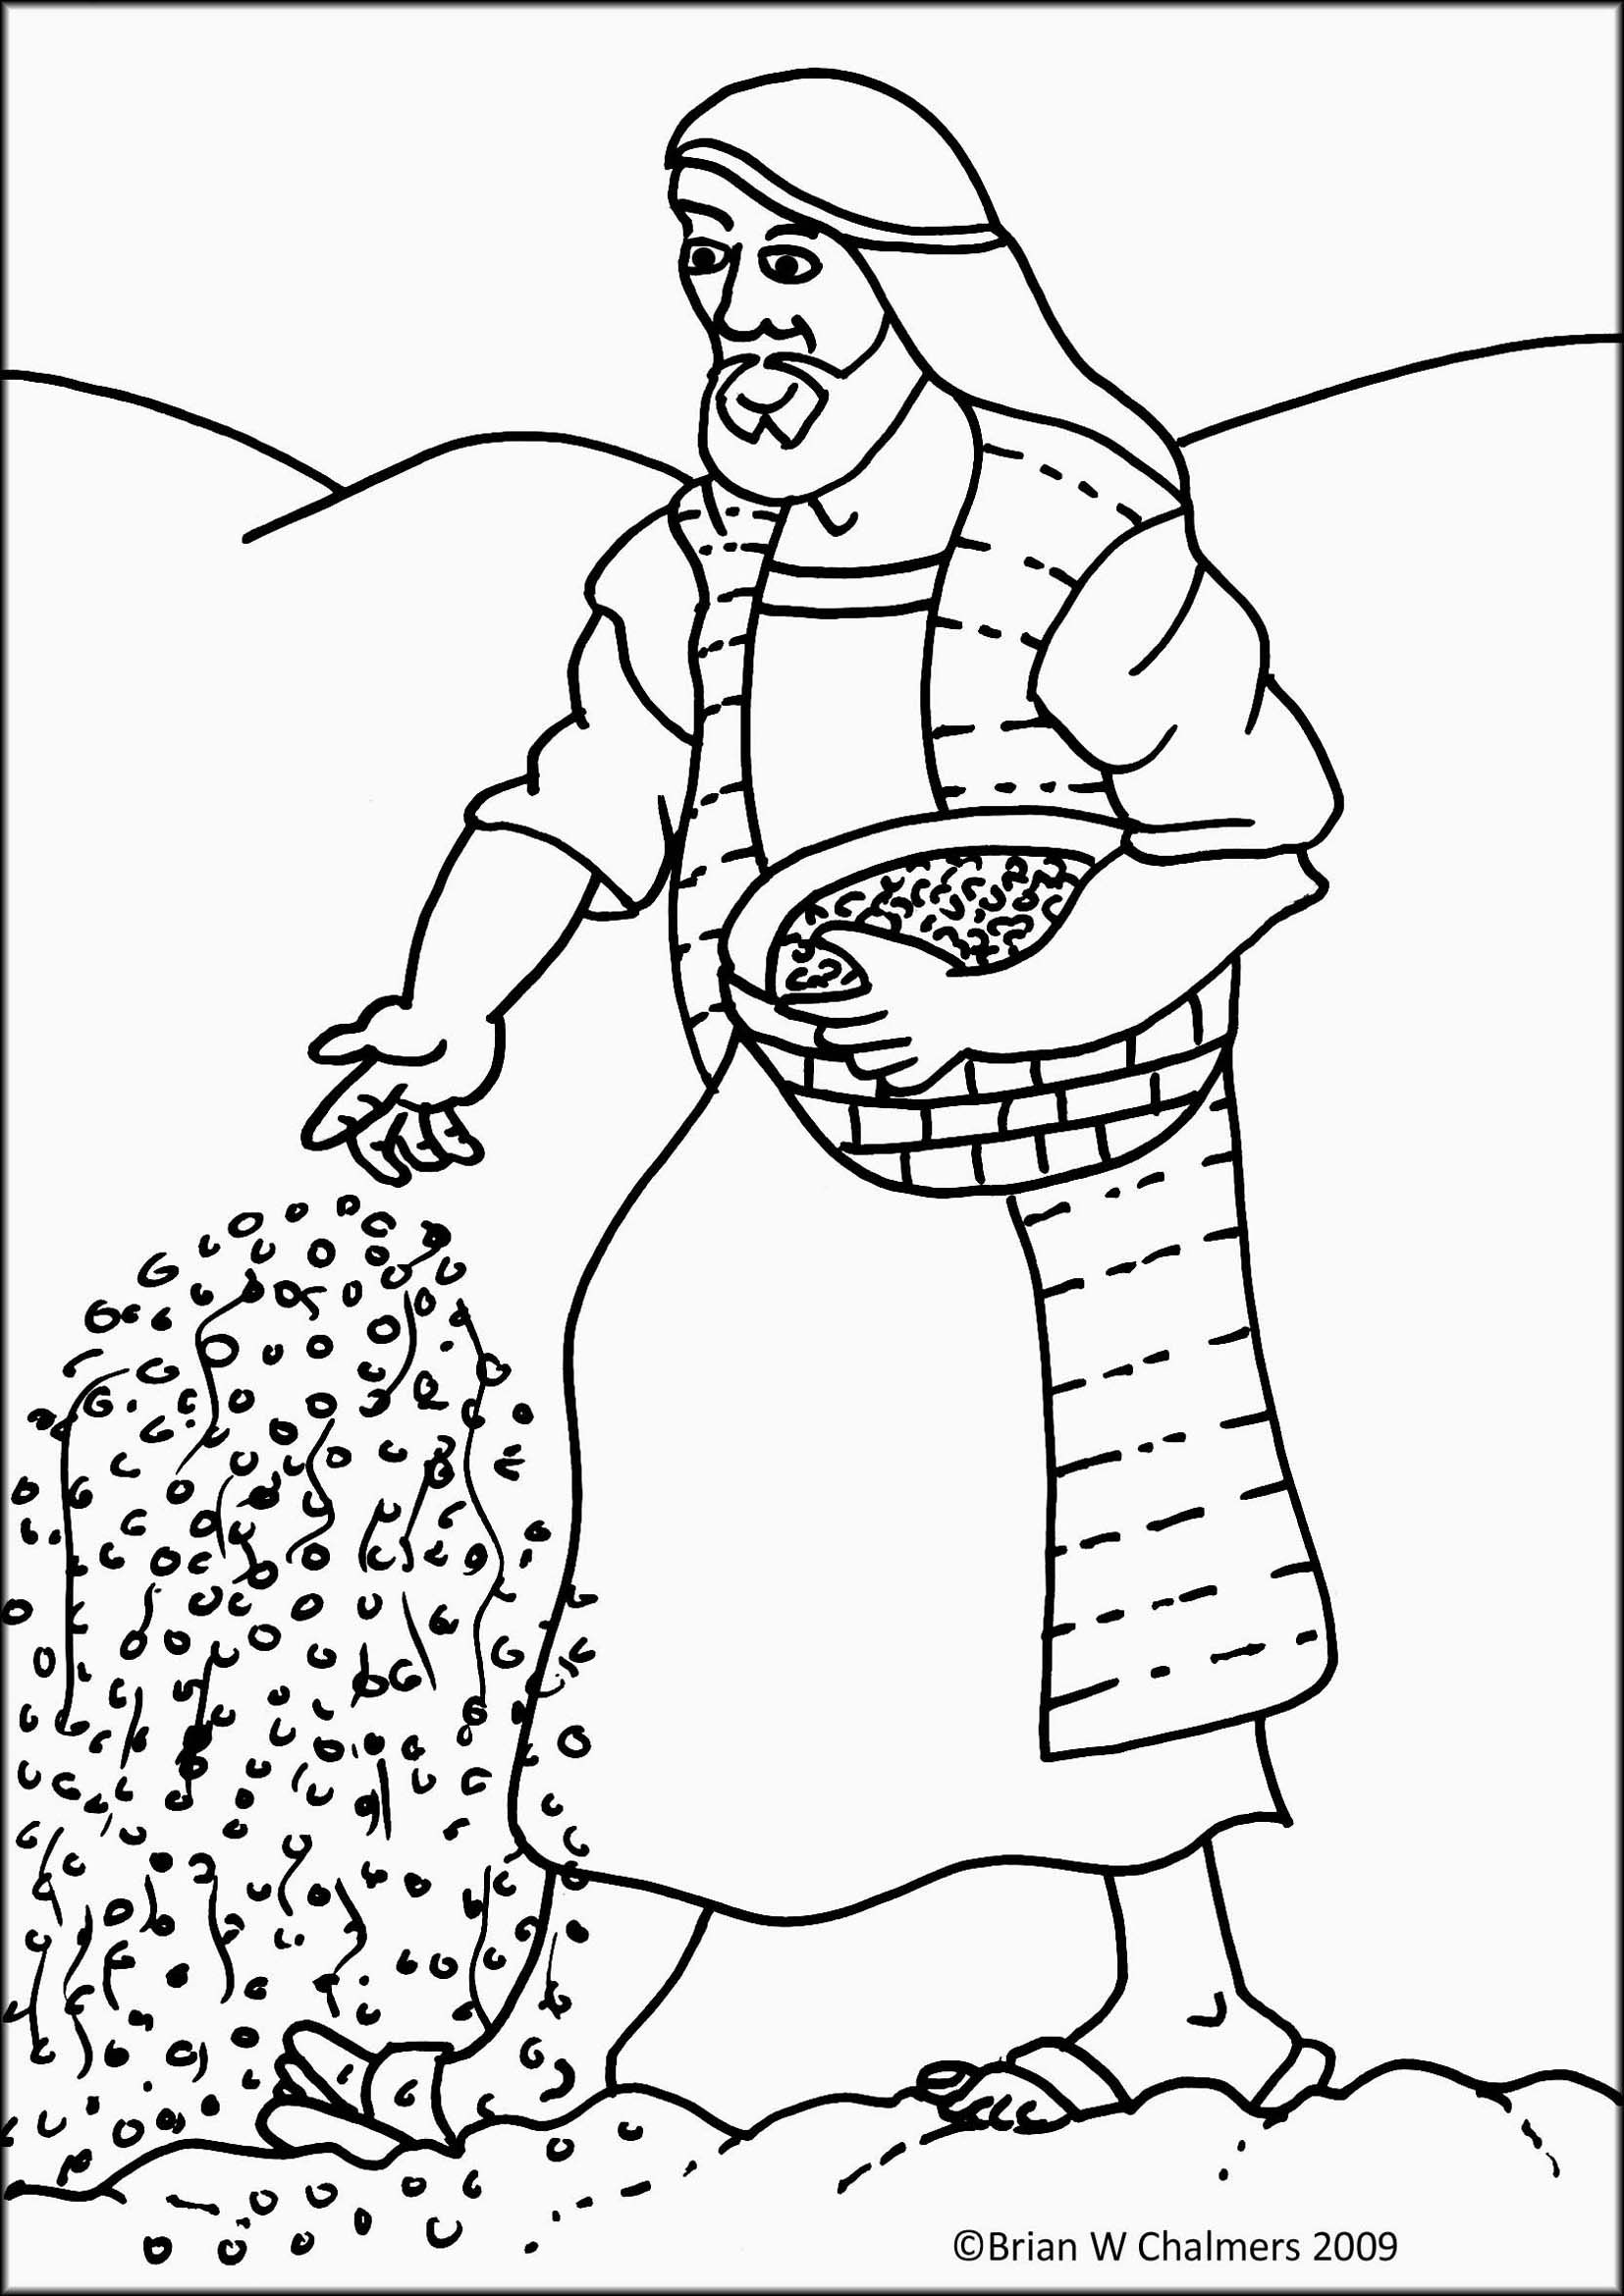 30+ Parable of the mustard seed coloring page info